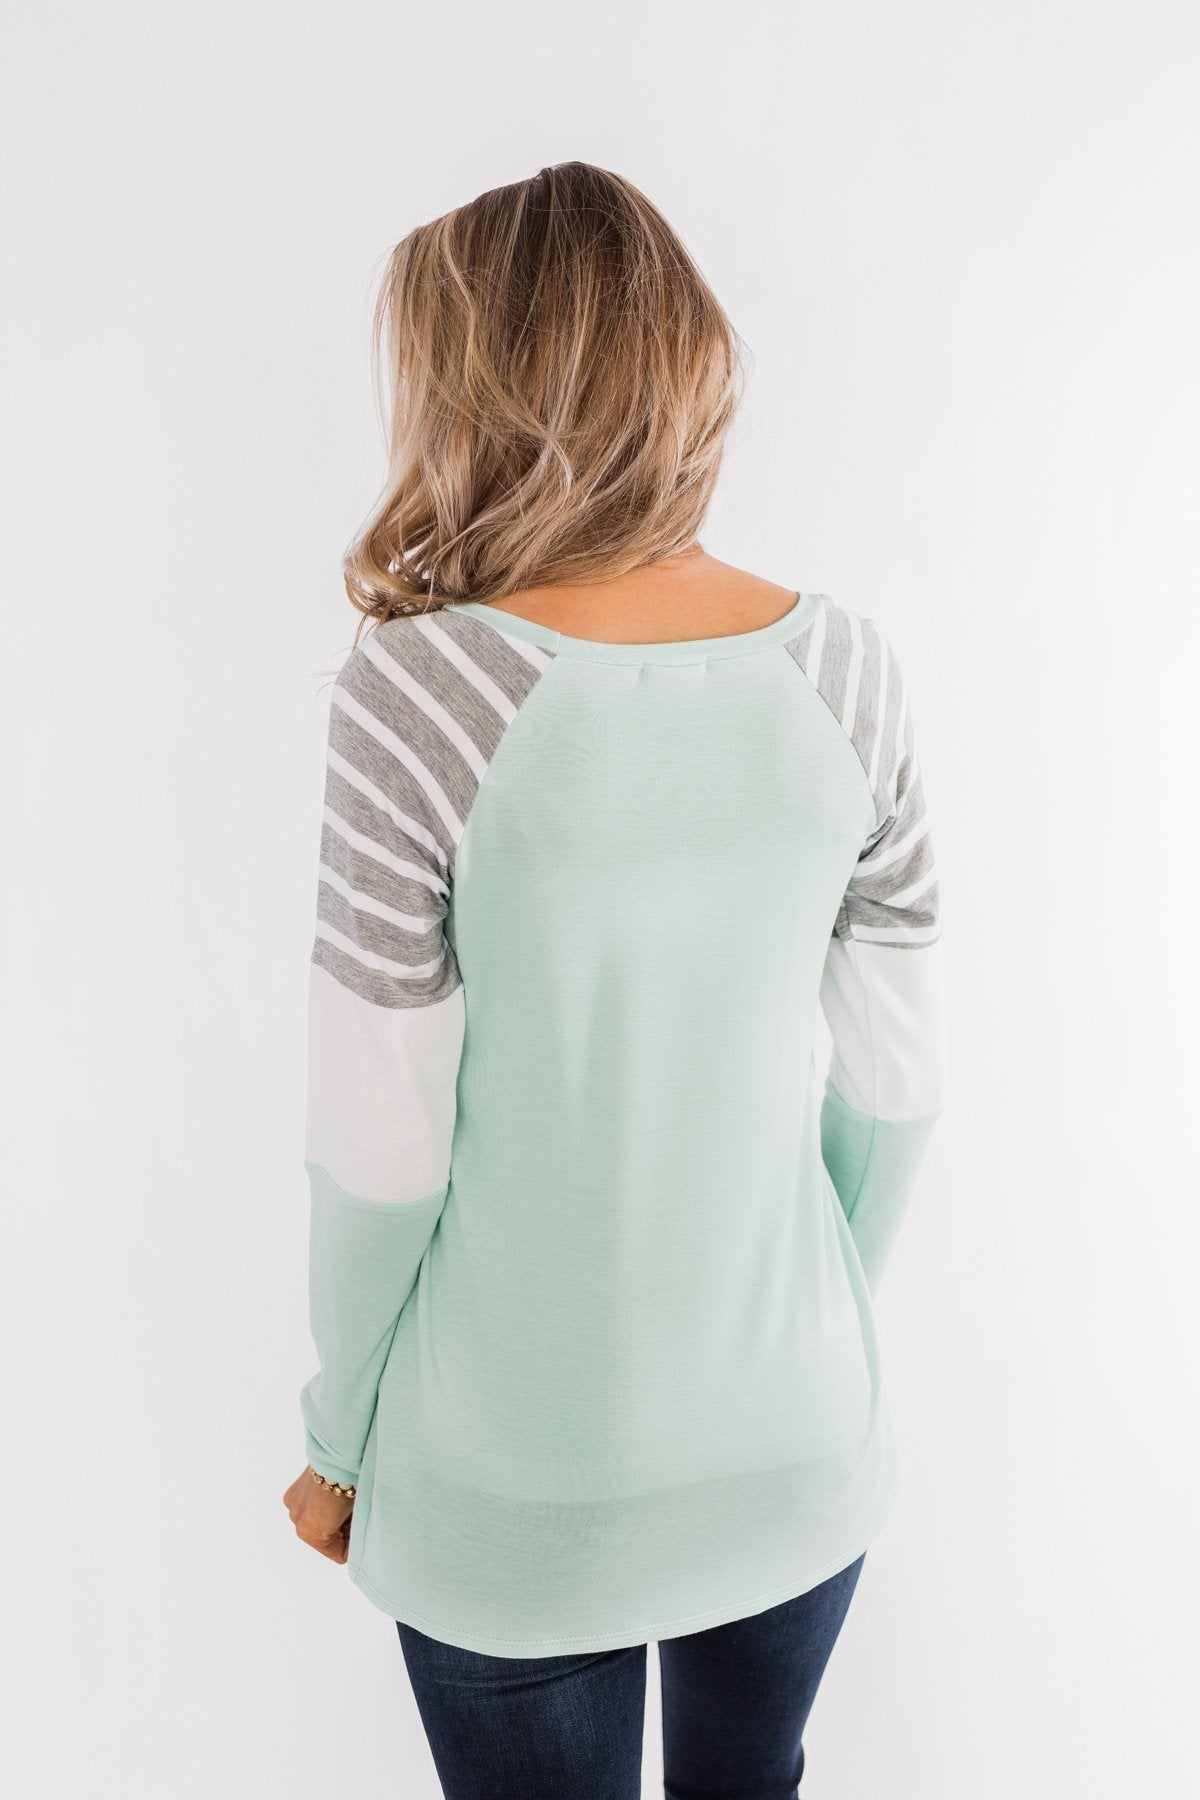 Comfy All Season Color Block Top- Mint, Grey, & Ivory